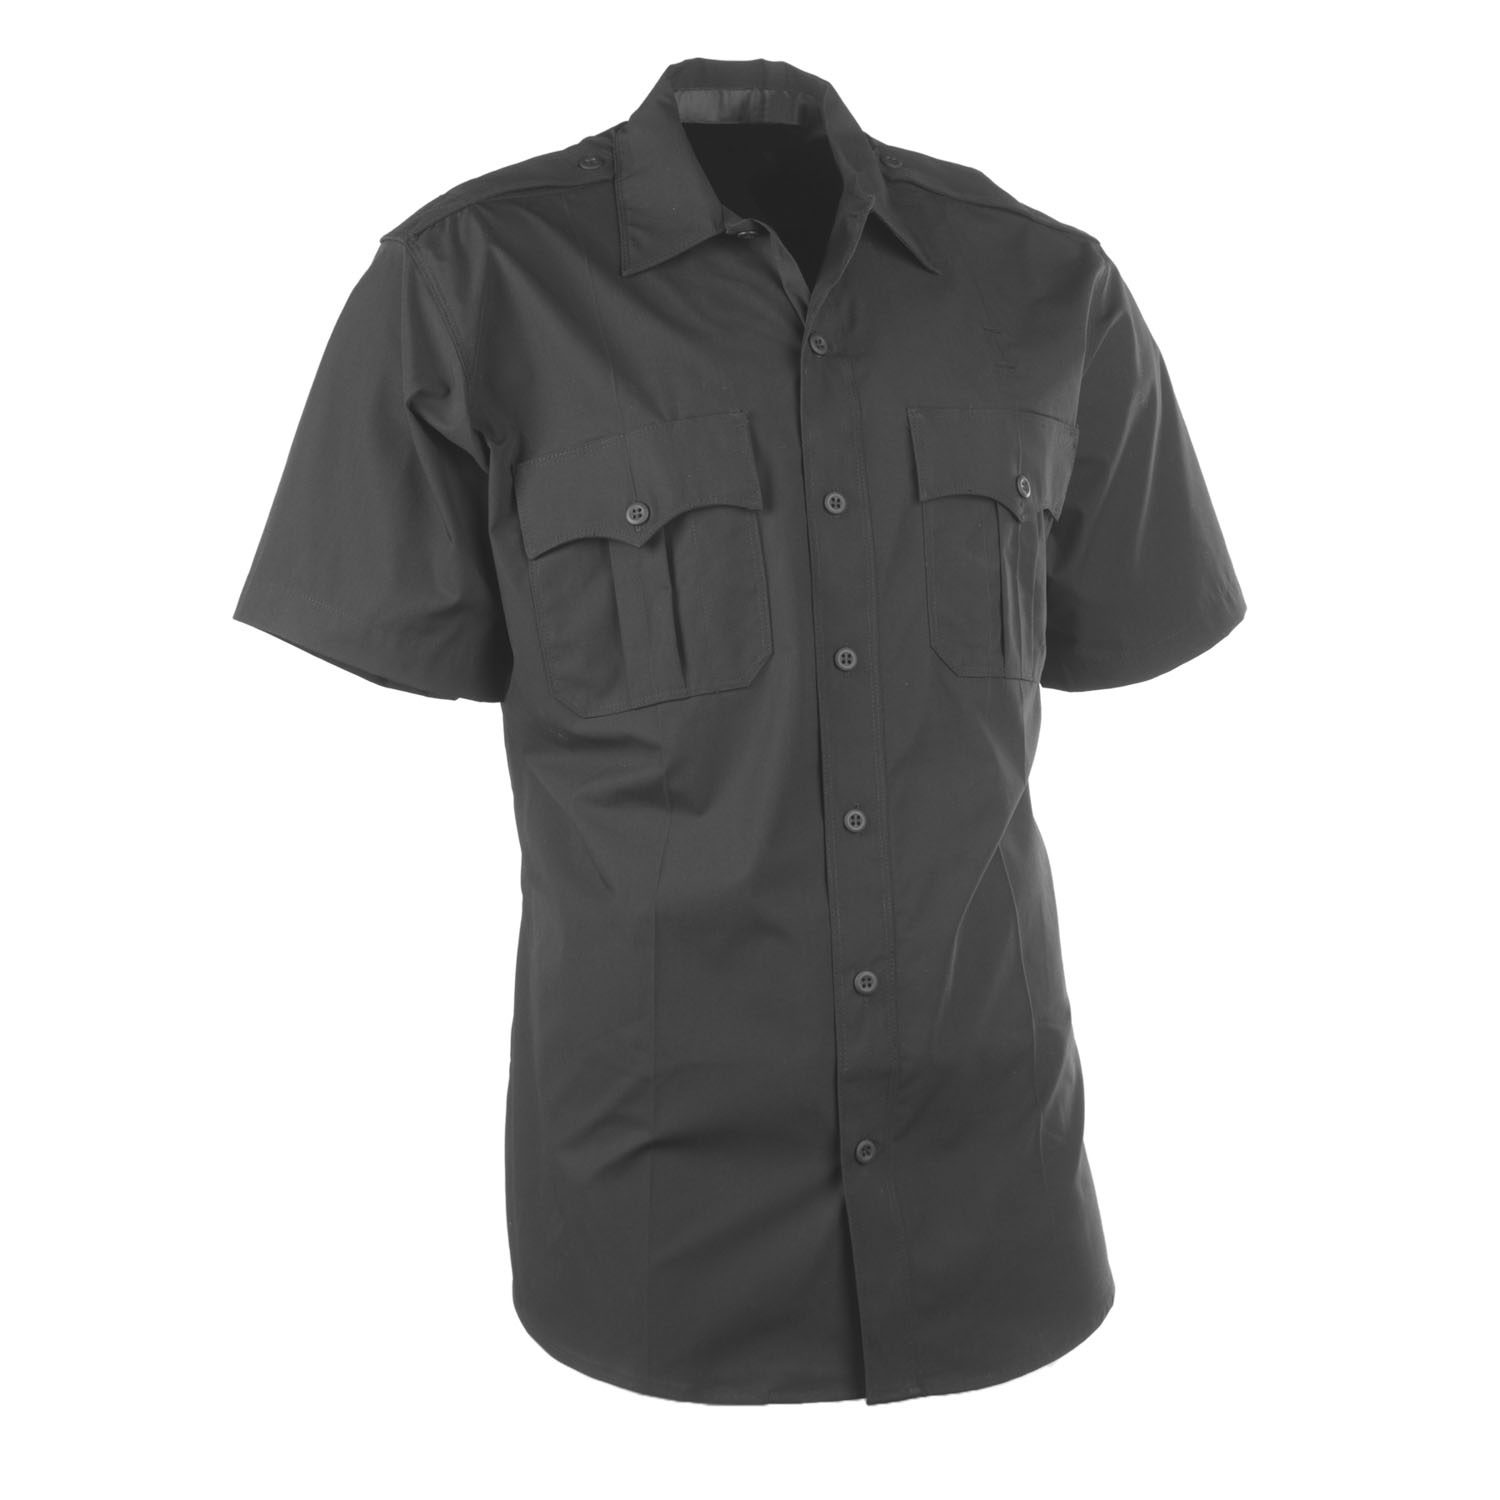 Cross Fx Elite Class A Style Short Sleeve Shirt by Flying Cr